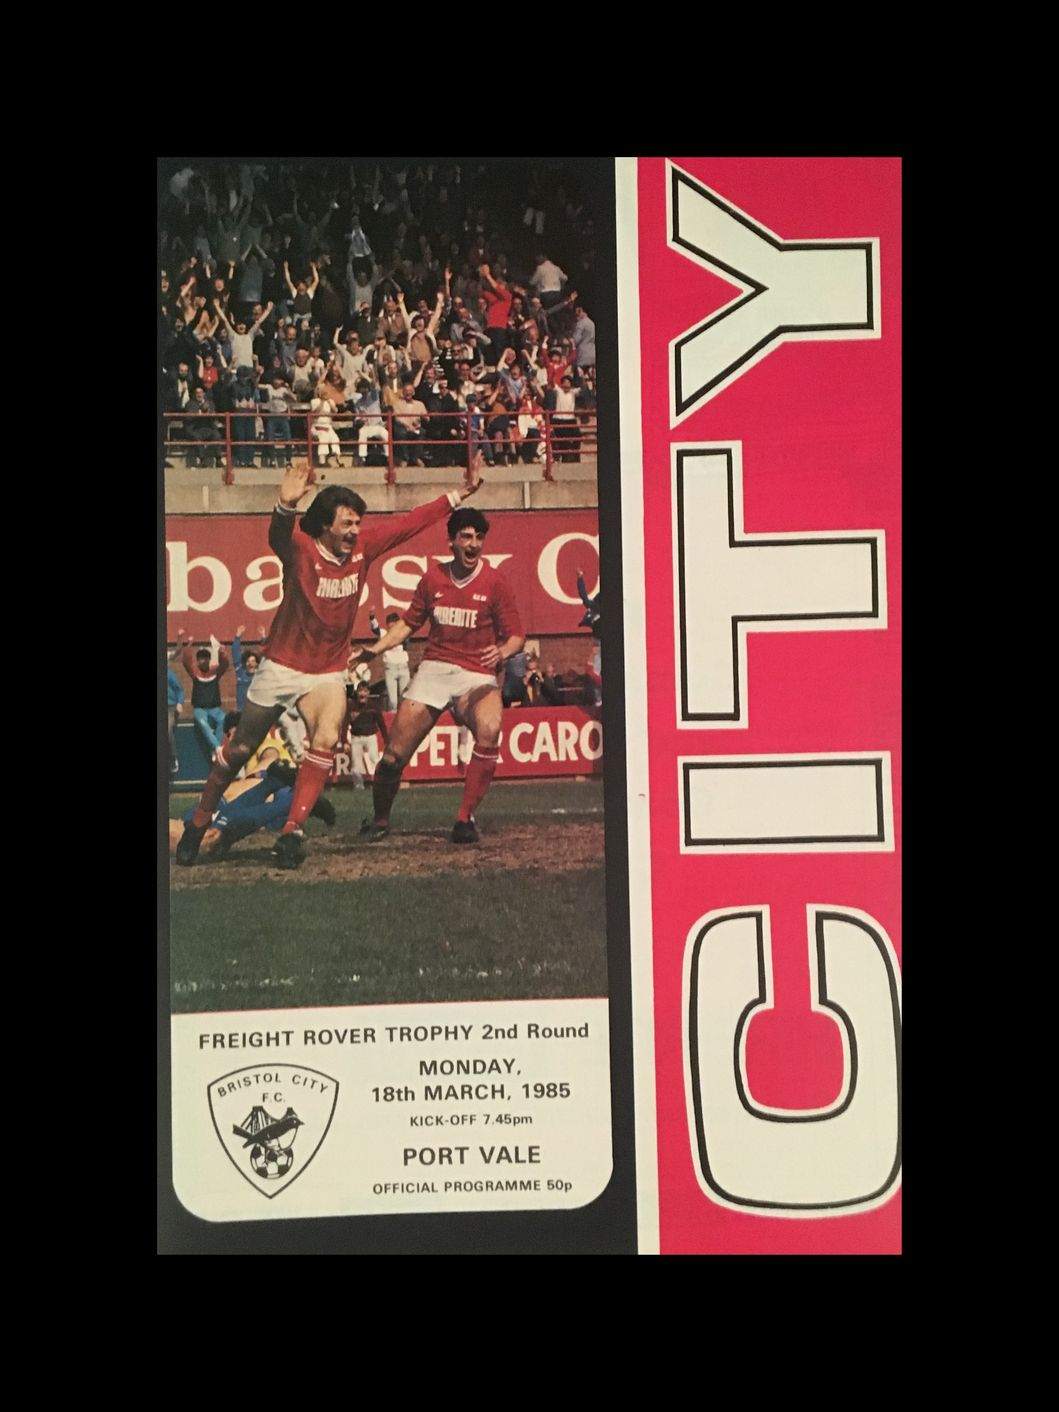 Bristol City v Port Vale 18-03-85 Programme